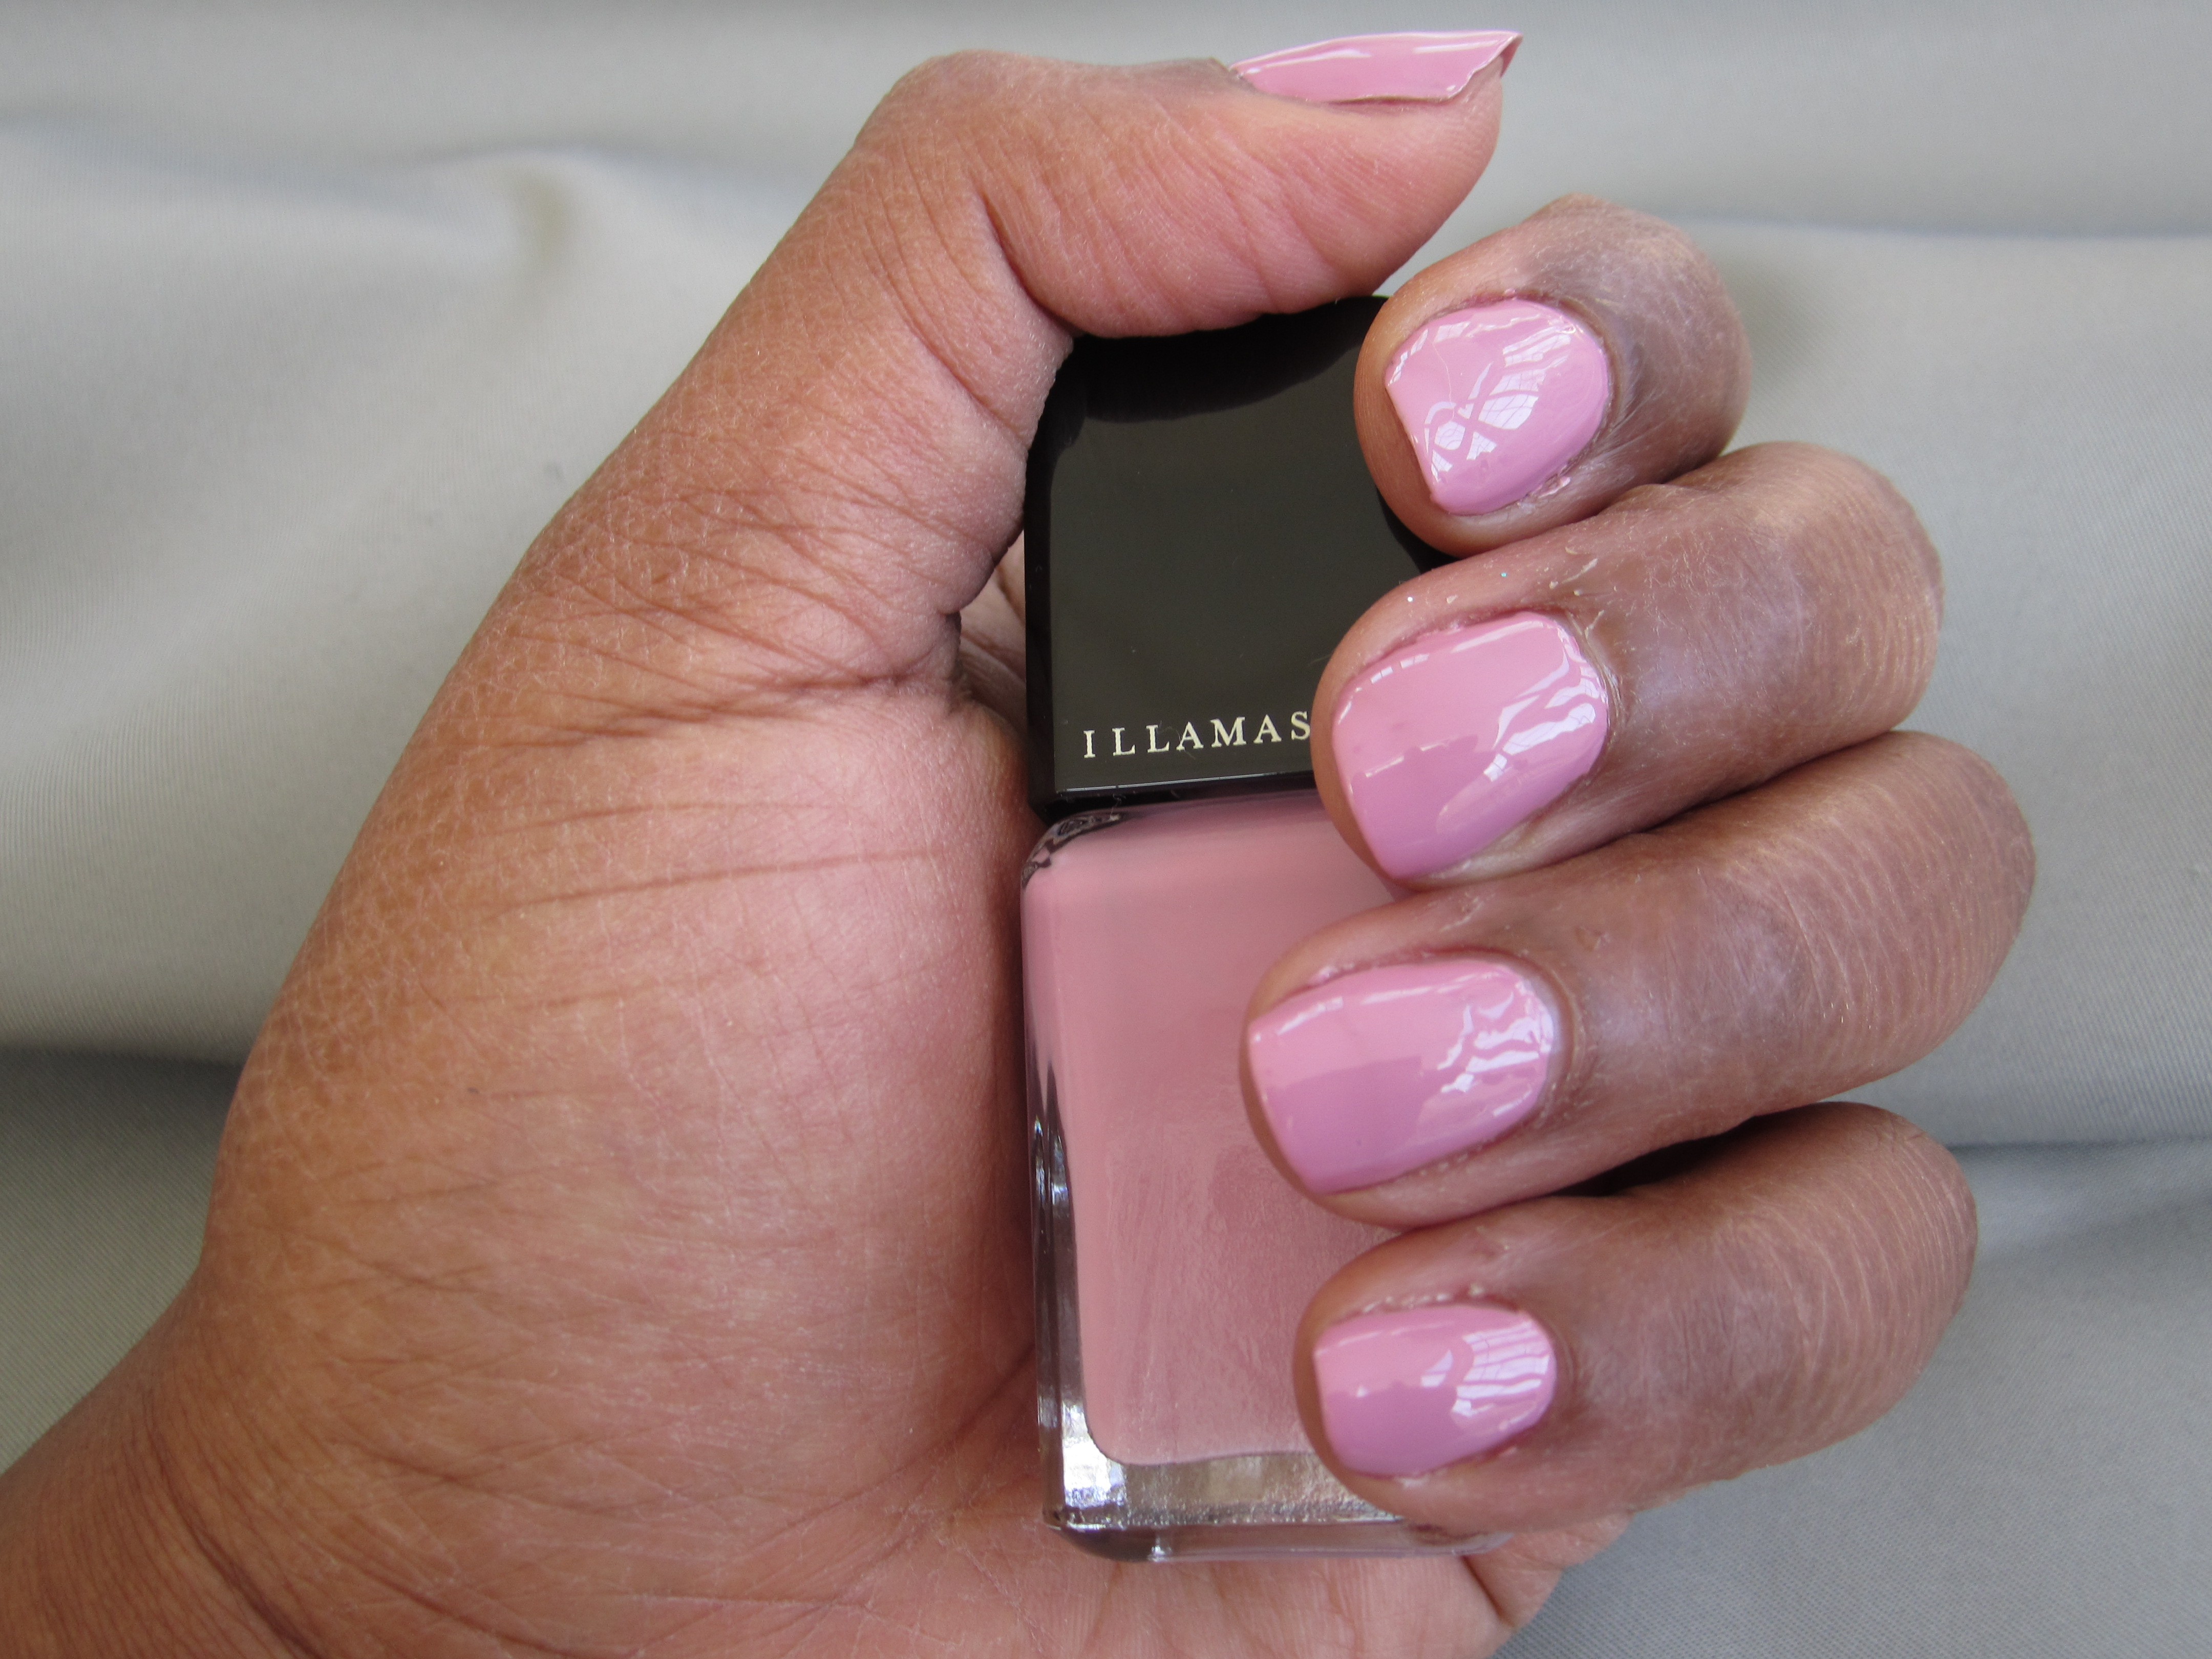 This Is A Quick Picture Of Jan On My Nails Two Coats With Favorite Top Coat Seche Vite I Would Another Illamasqua Polish